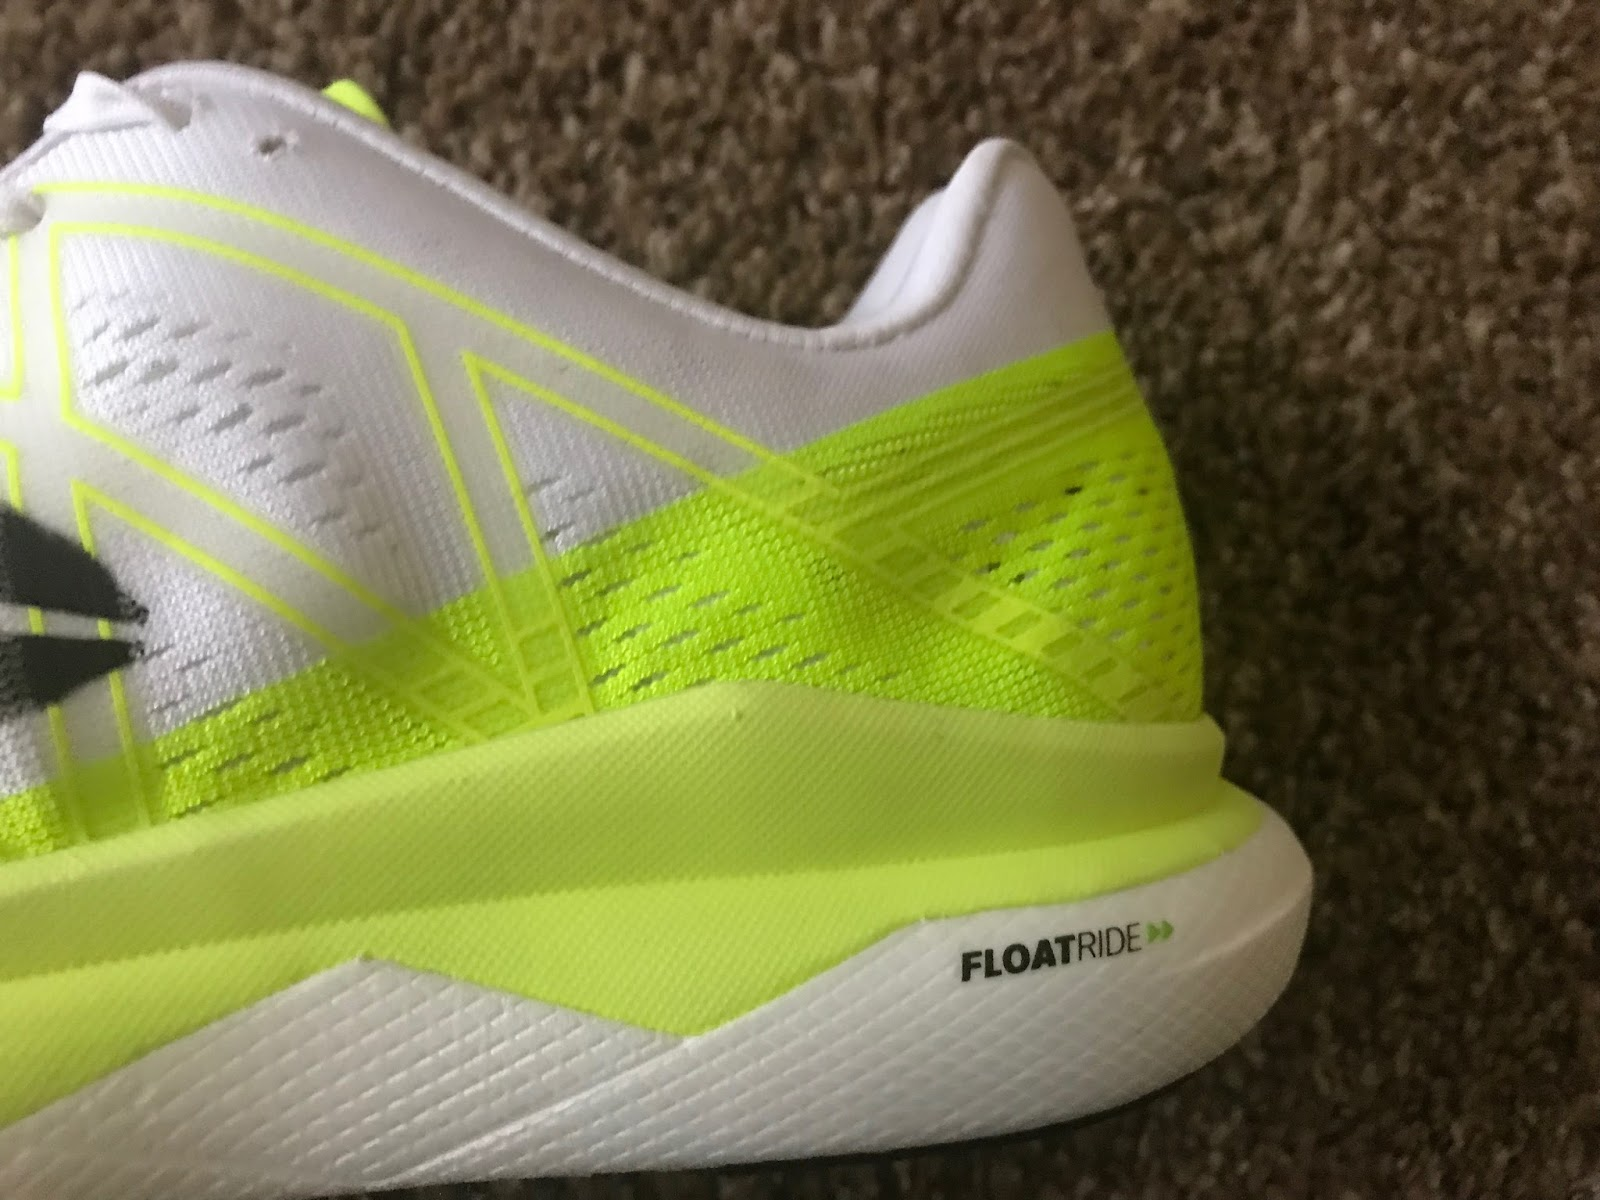 42ea8d728ce Derek  The midsole uses the same dual density Floatride tech that was seen  in the Floatride Run.